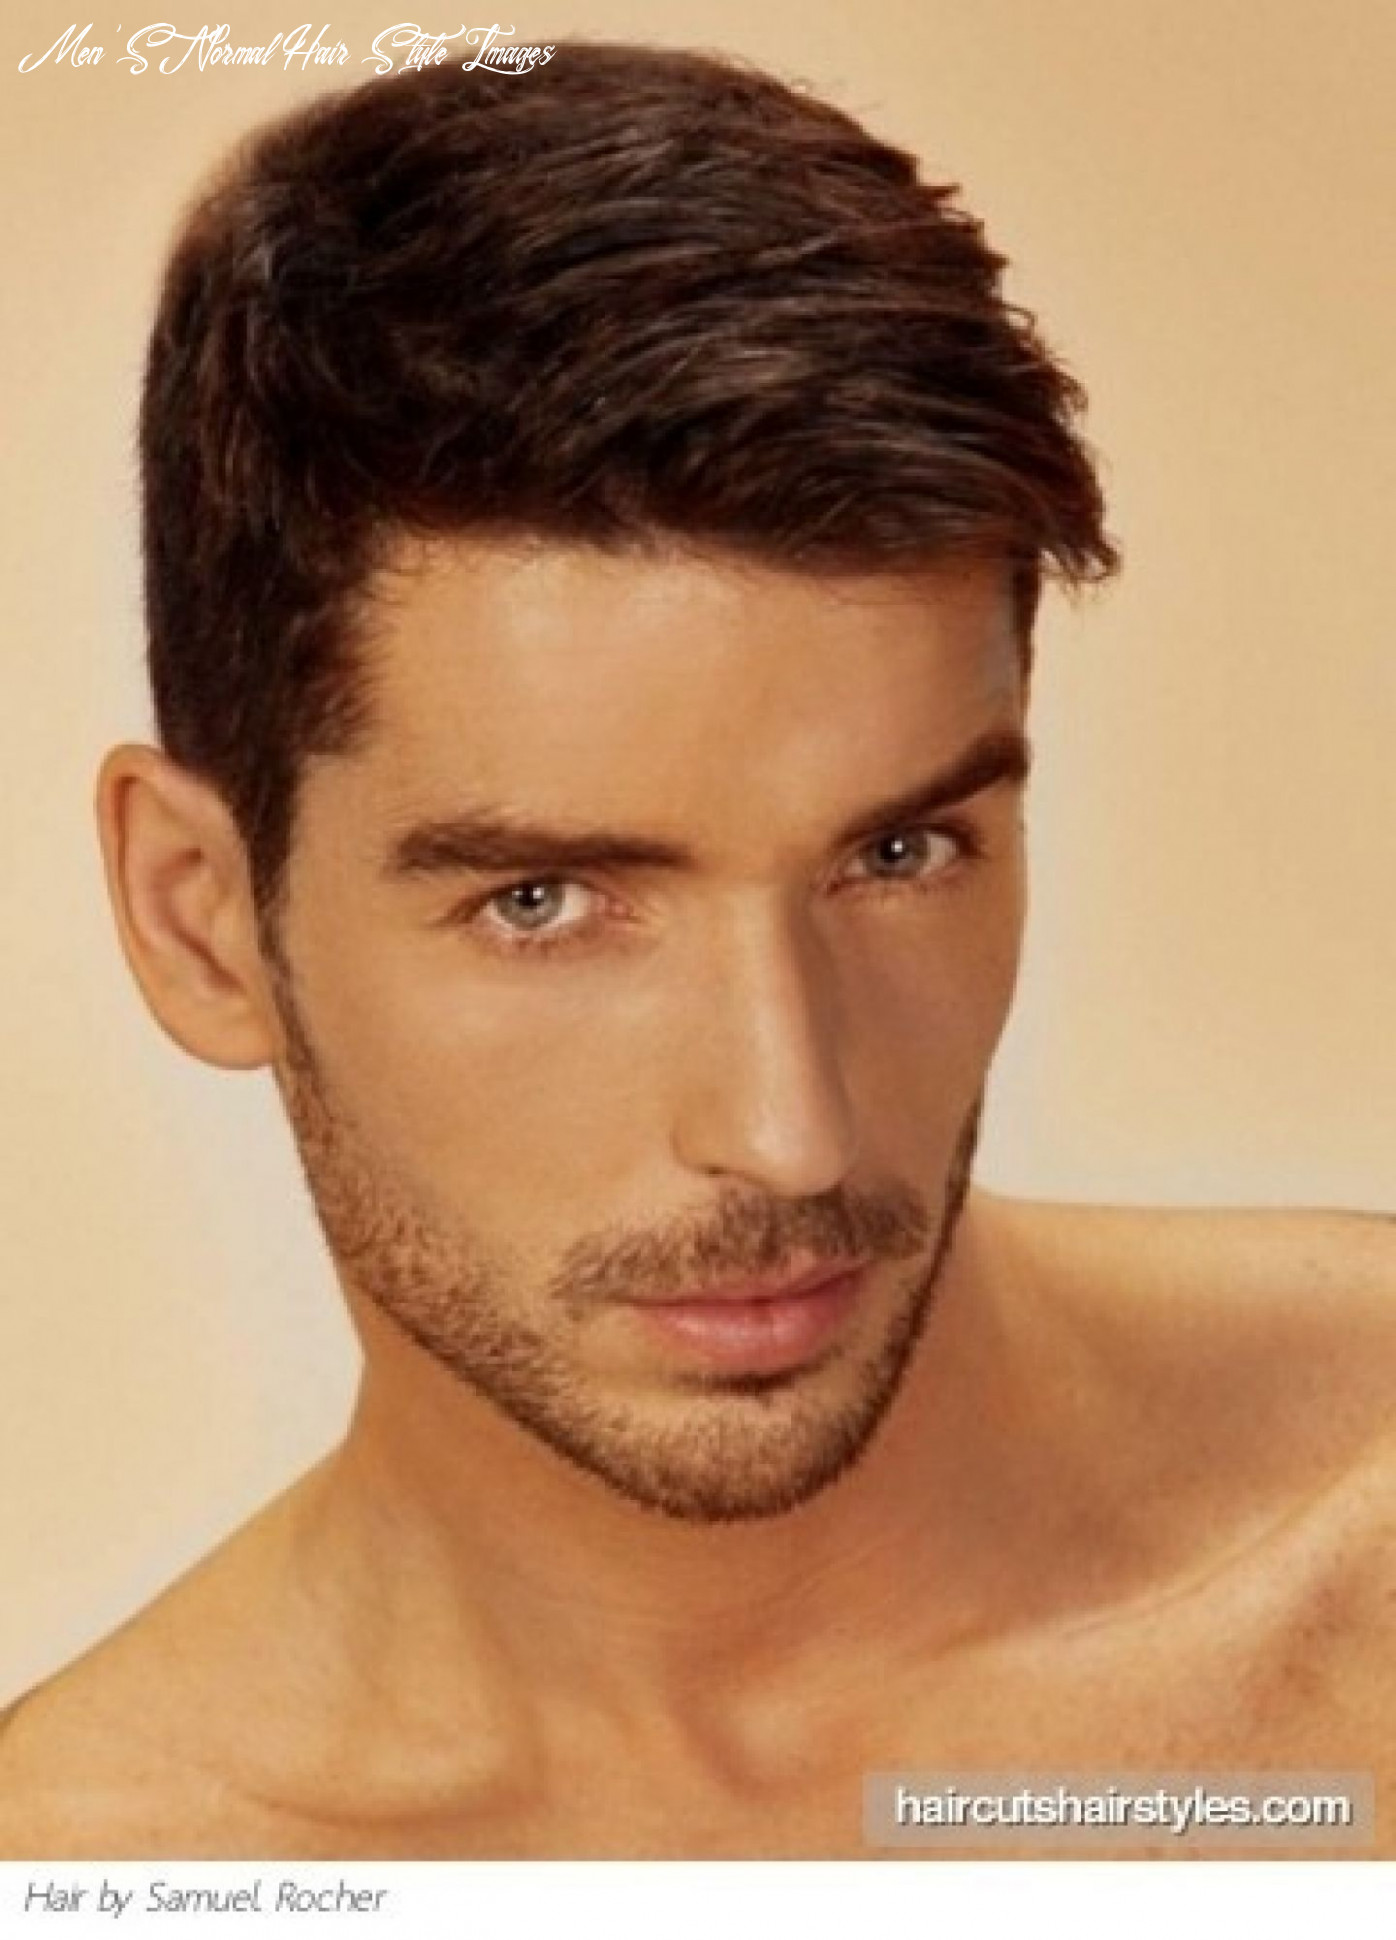 Normal hairstyles mens | haircuts for men, mens hairstyles short